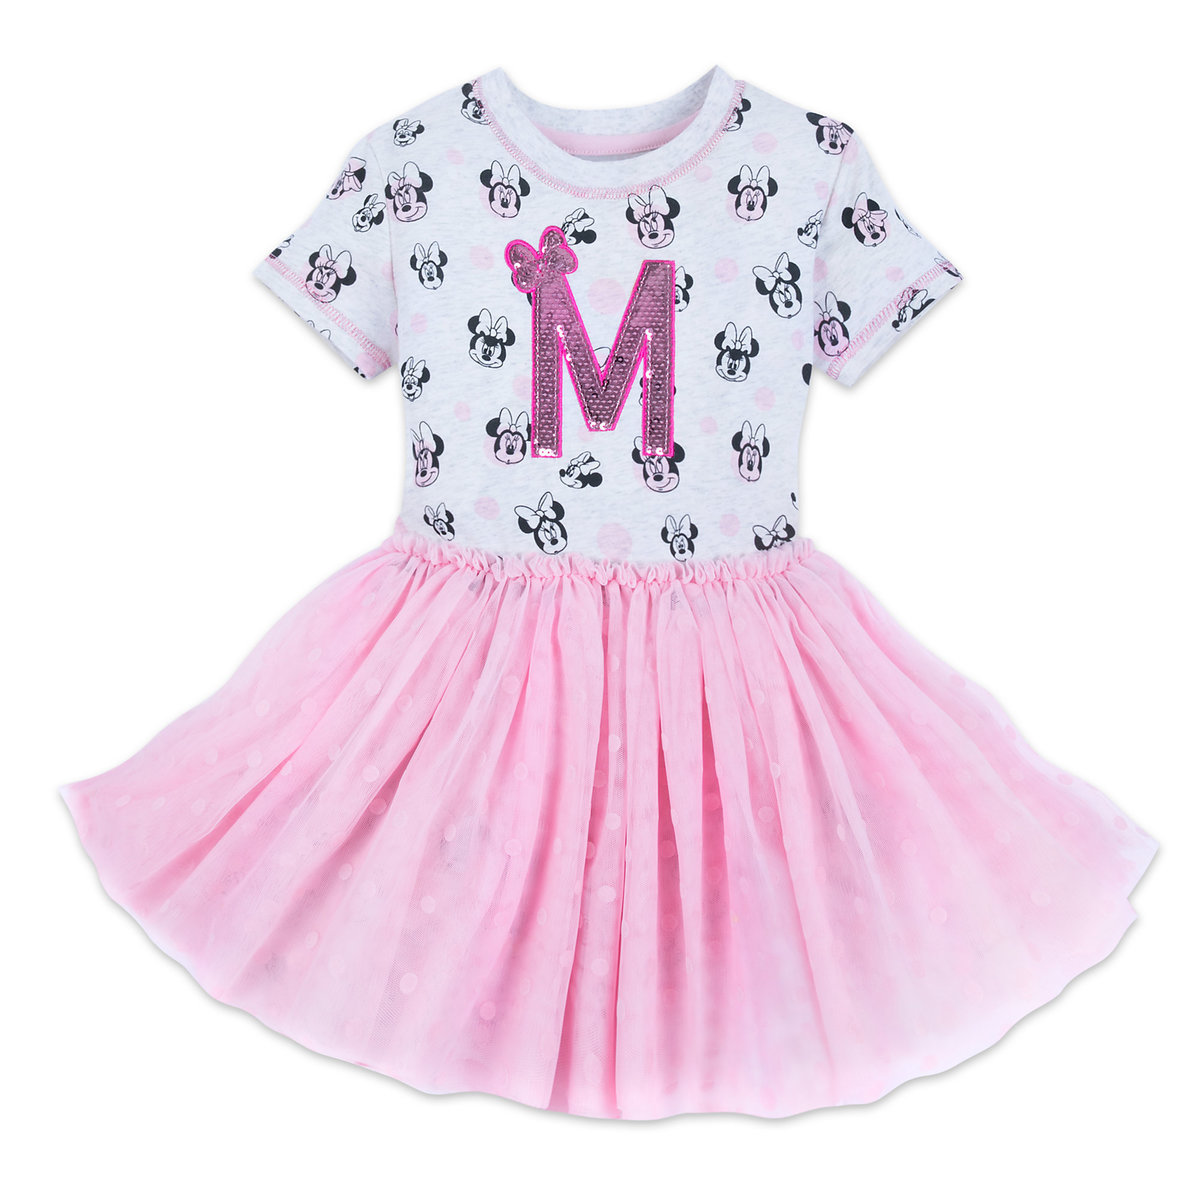 936d91183 Product Image of Minnie Mouse Tutu Dress for Girls # 1